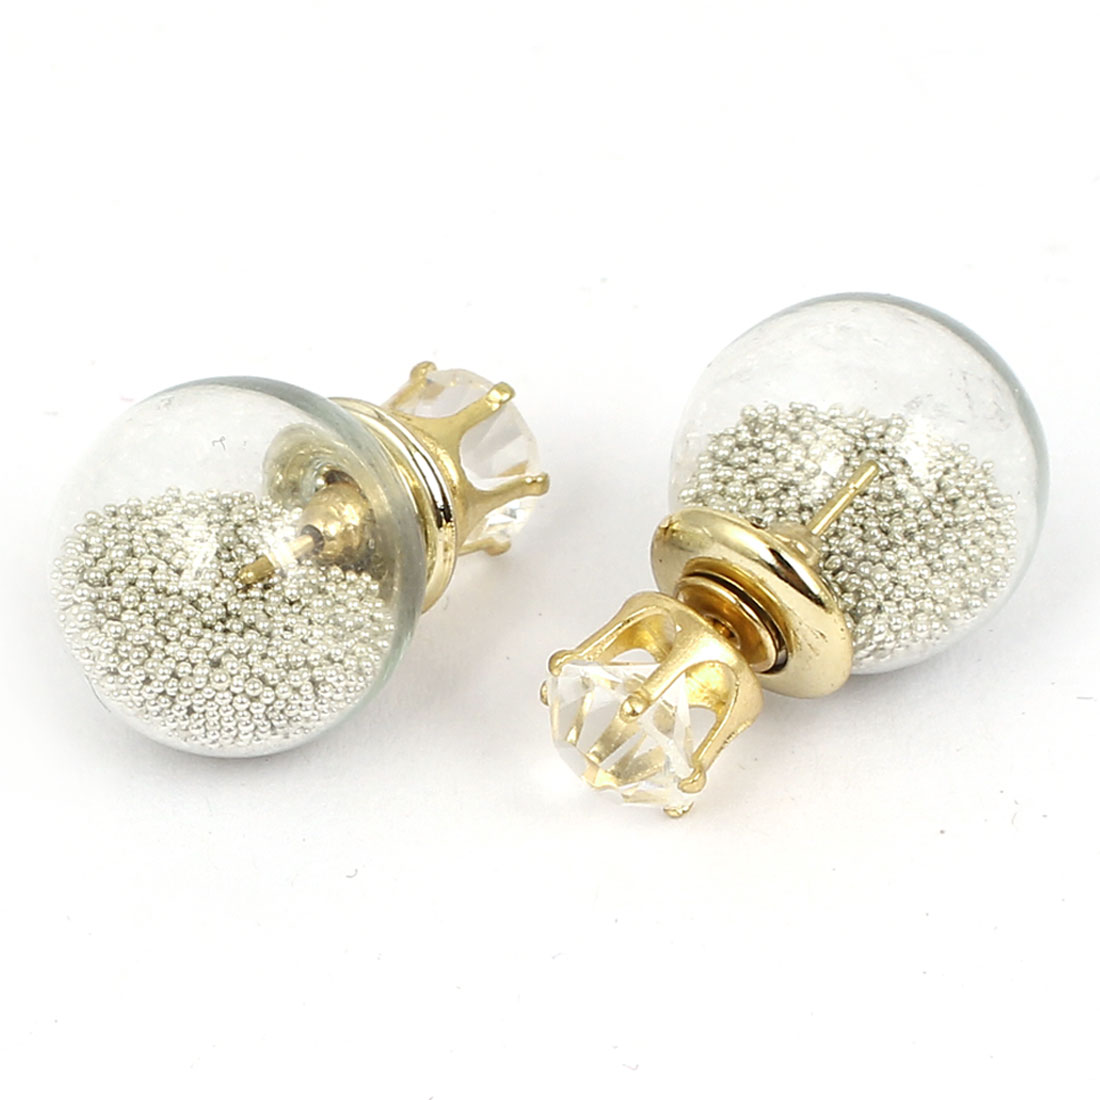 Women Faux Crystal Decor Round Bulb Design Double Side Stud Earrings Silver Tone Pair